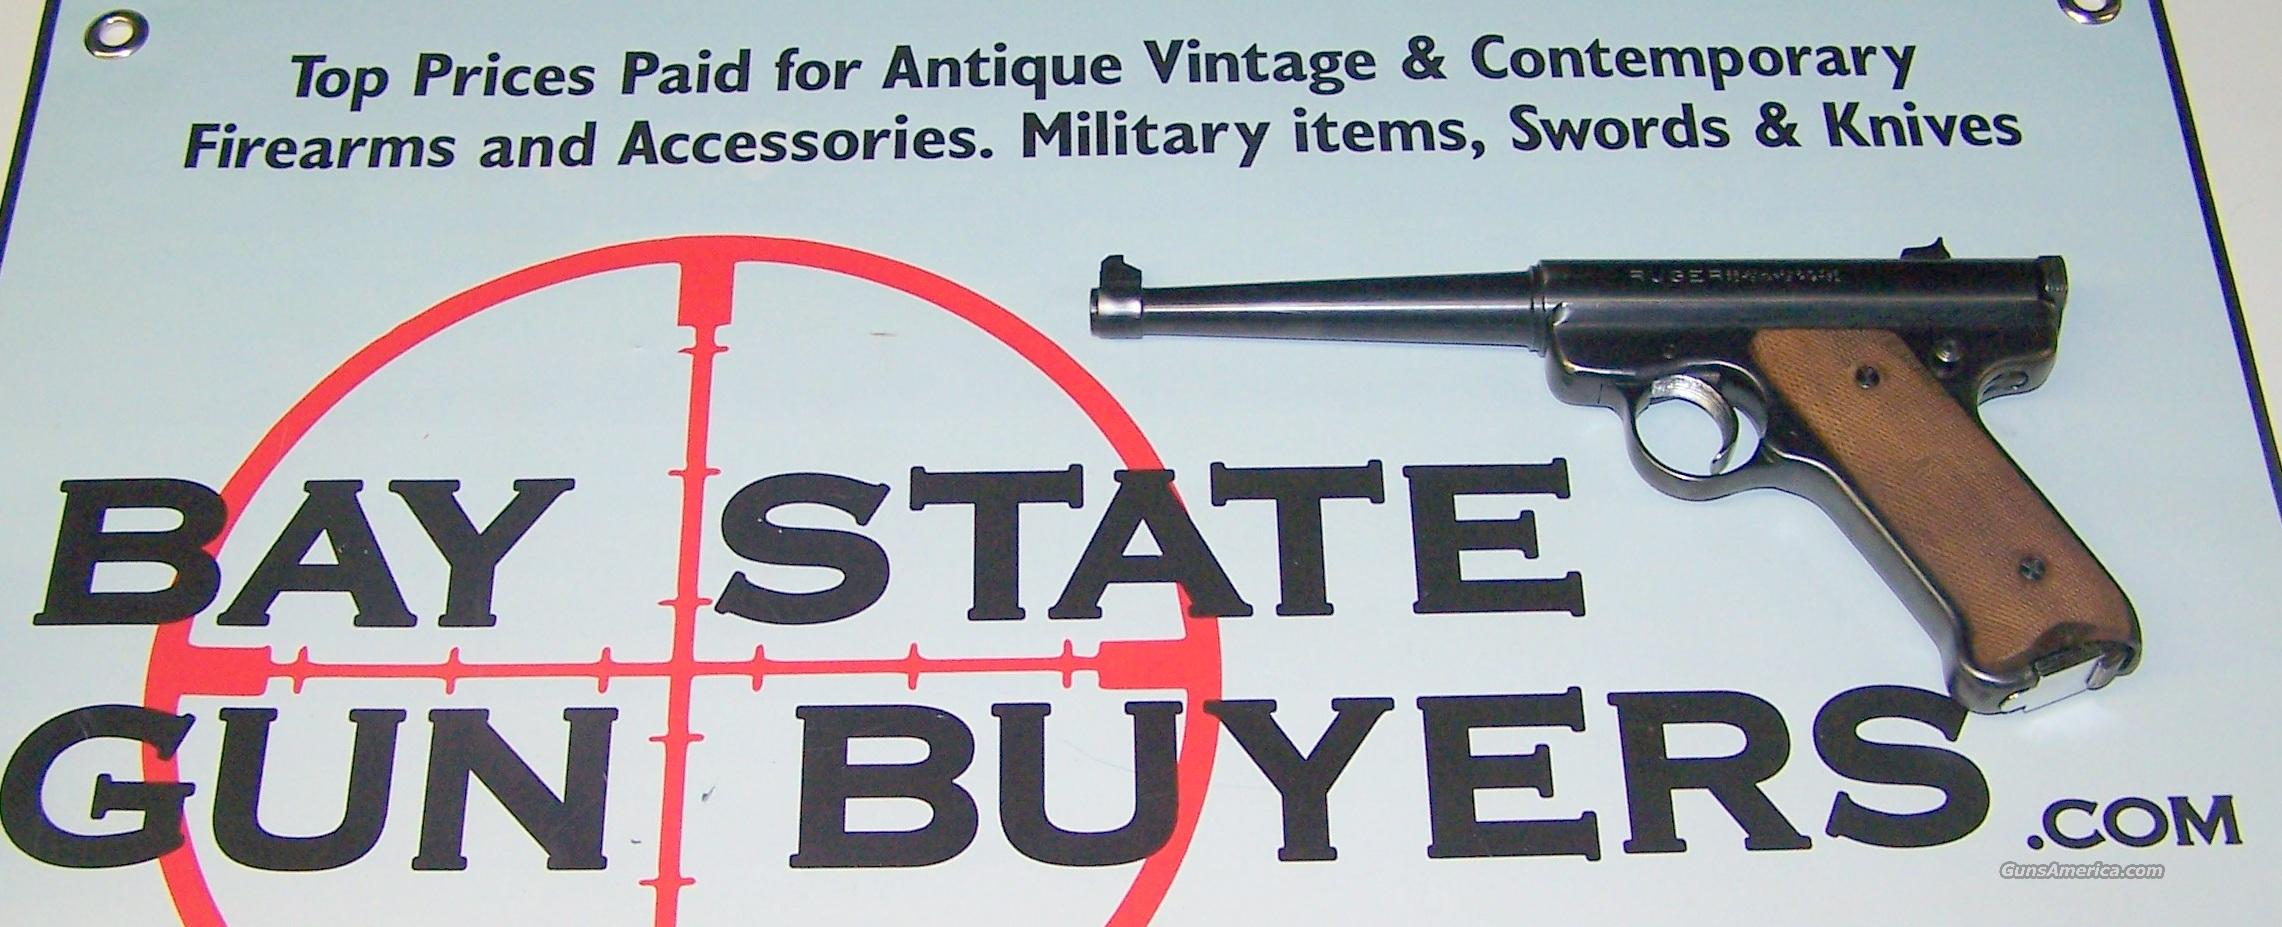 1973 Ruger Mark I Standard w Box + Papers  Guns > Pistols > Ruger Semi-Auto Pistols > Mark I & II Family